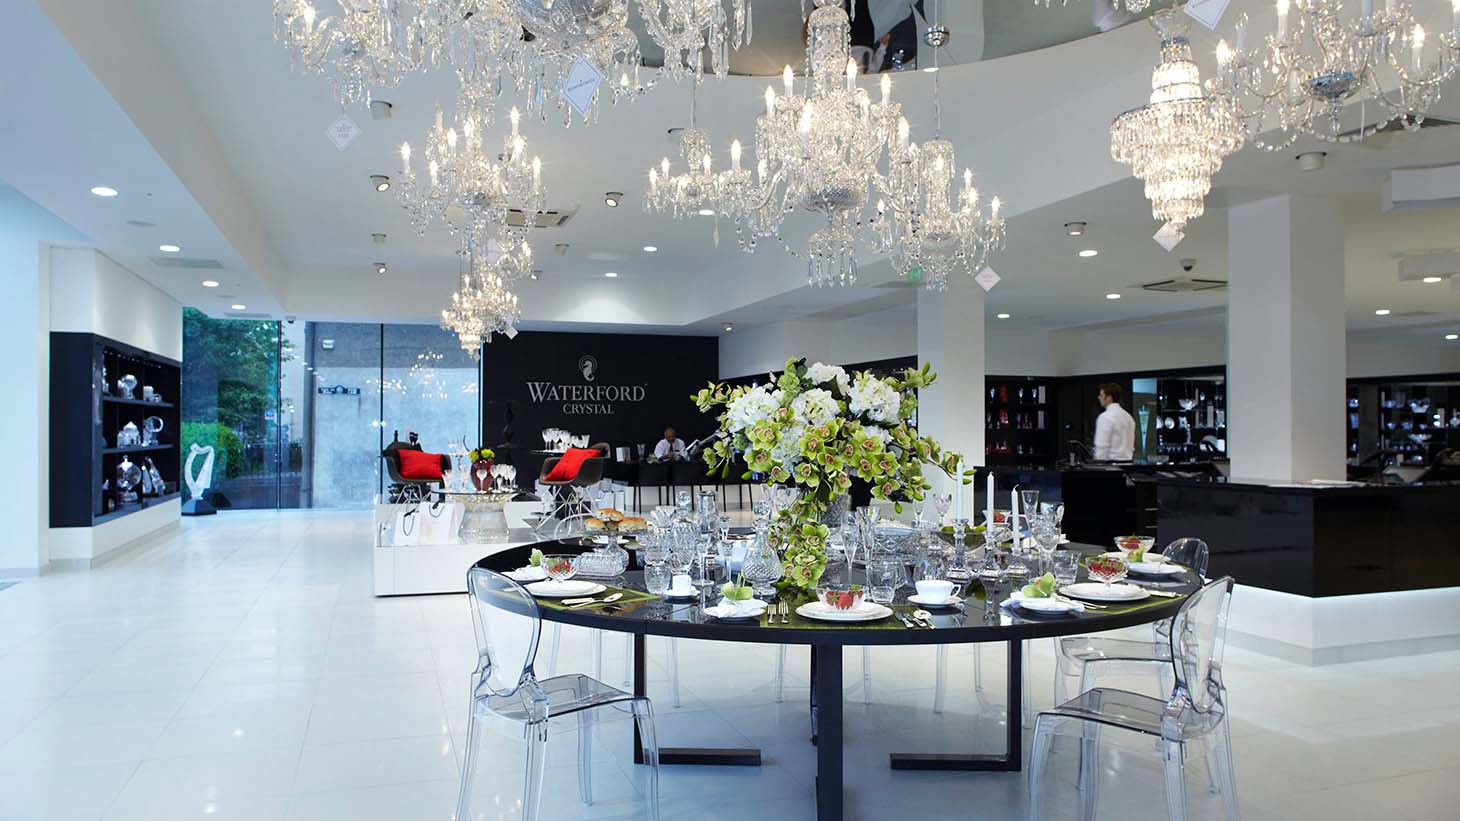 Pick up some beautiful pieces to take home at the House Of Waterford Crystal store.